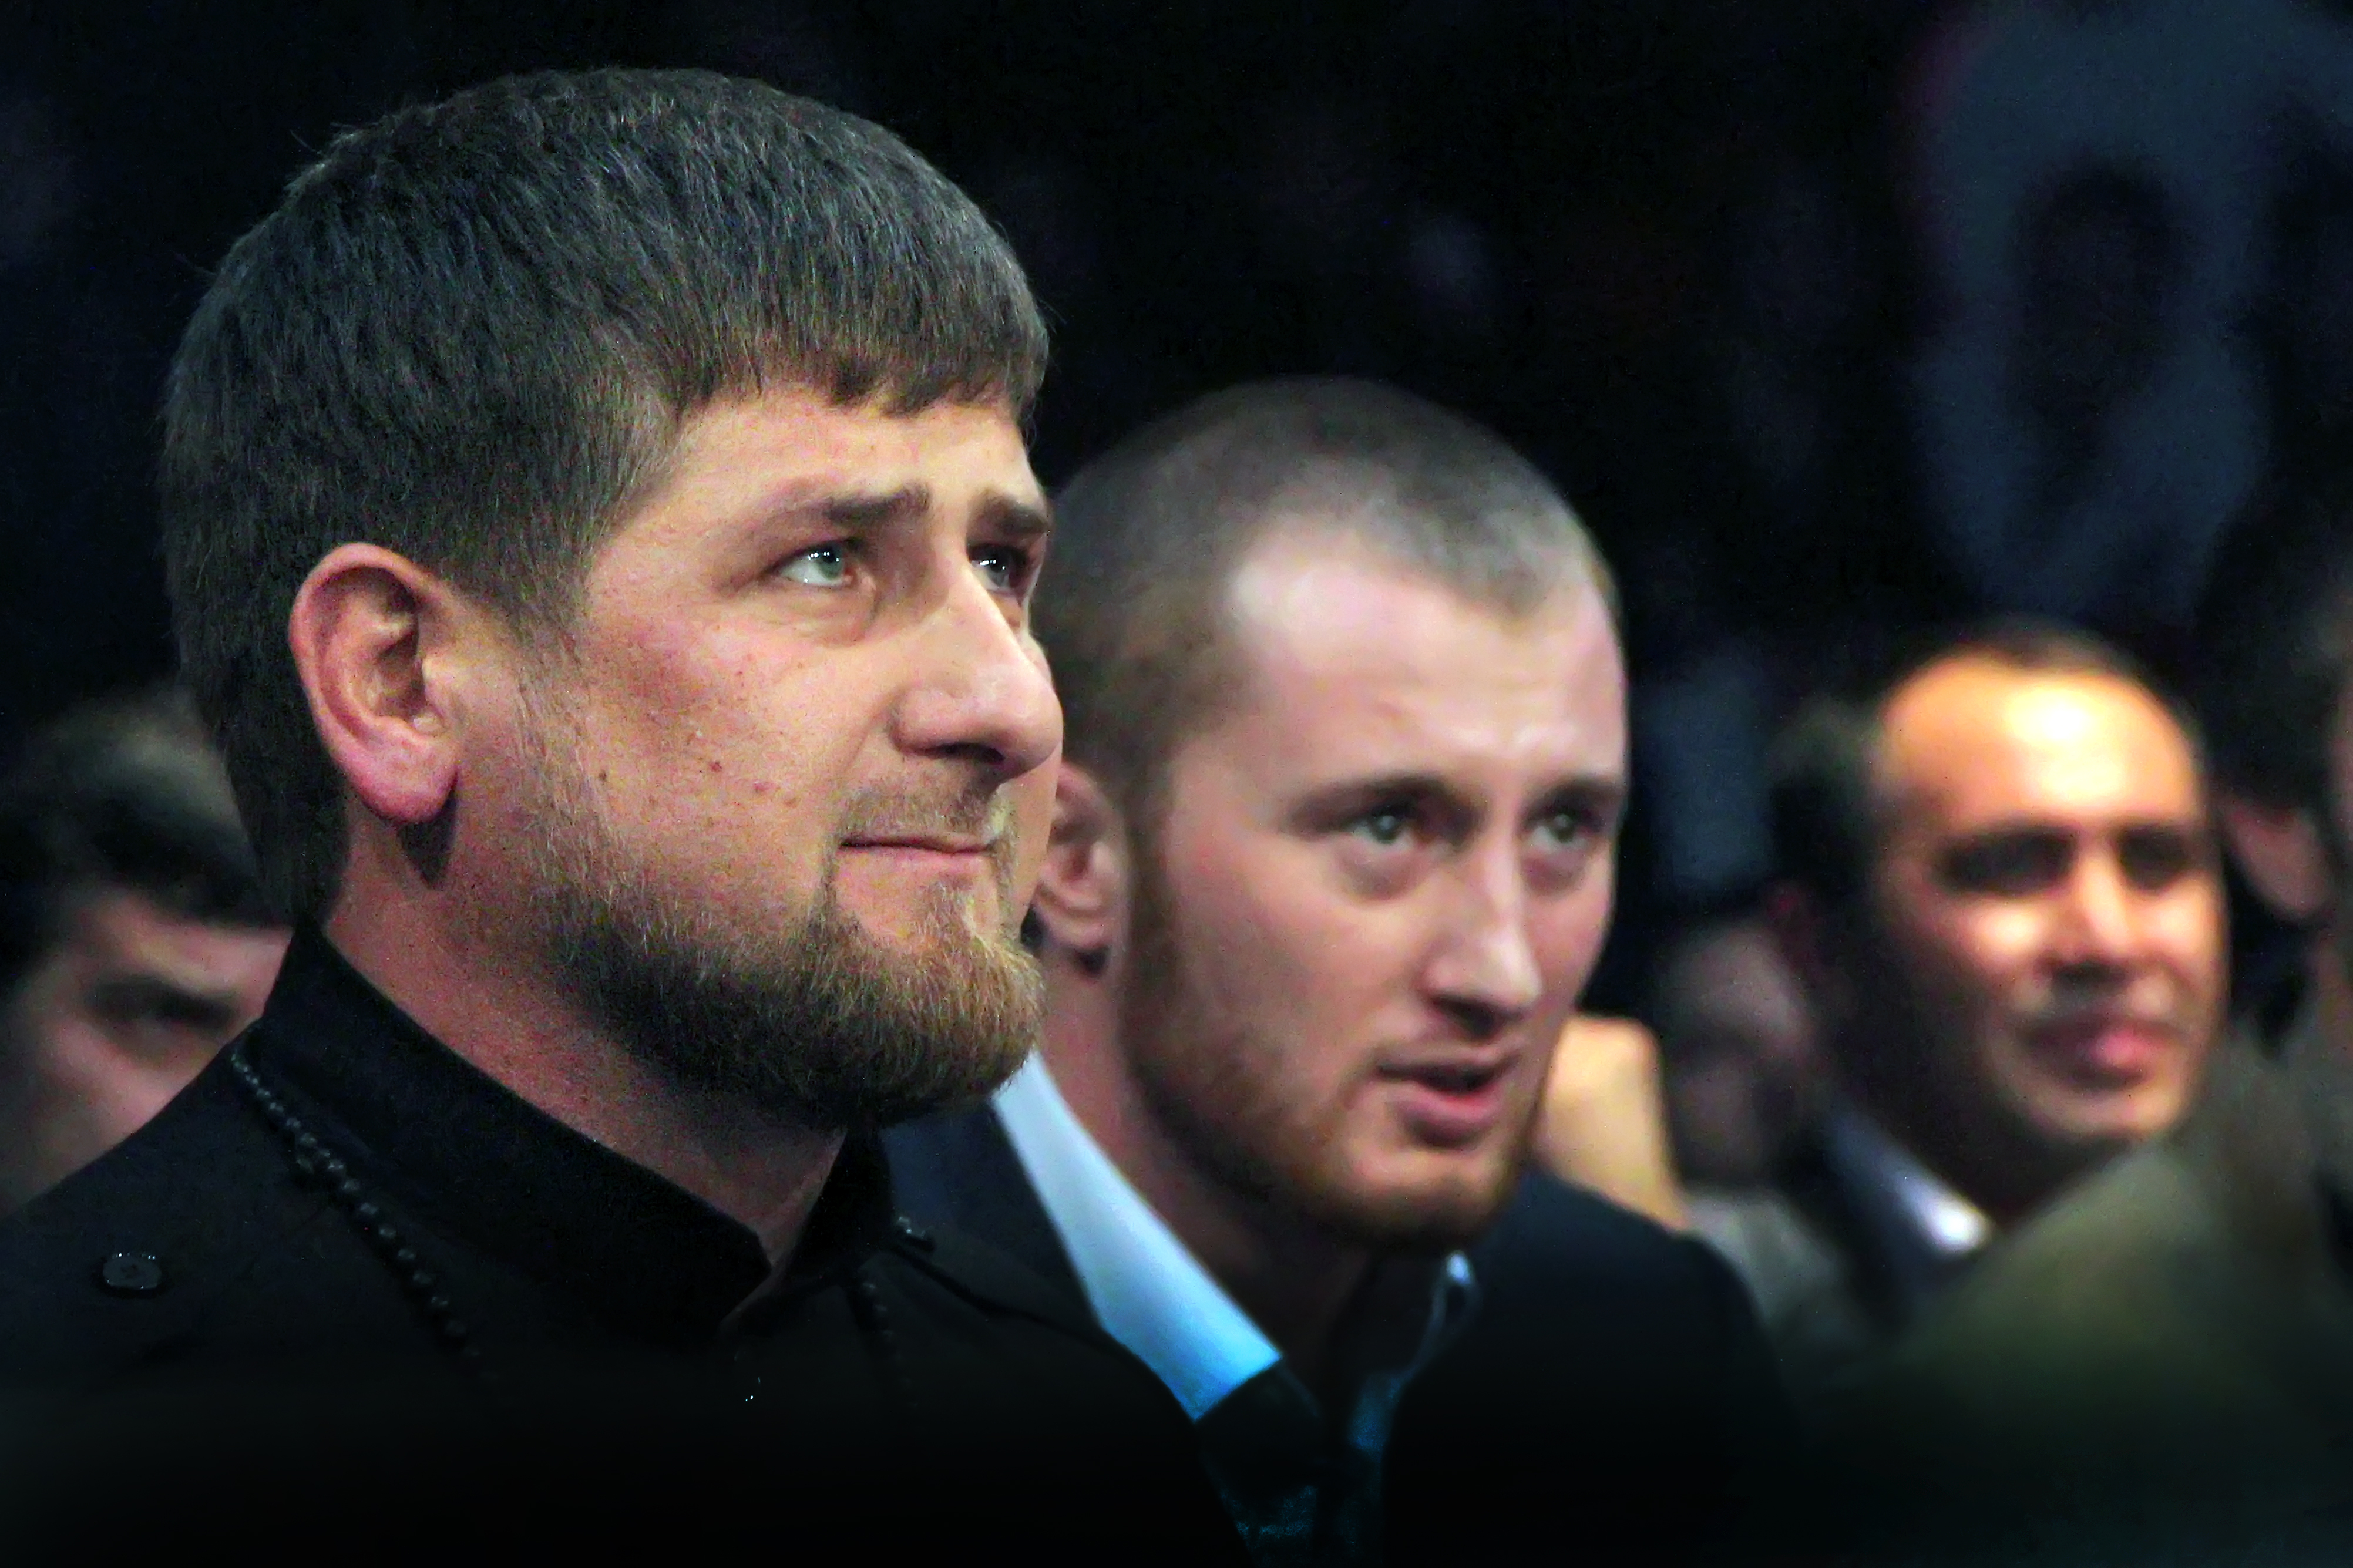 Kadyrov urged to vote for the image of Grozny and Derbent on new banknotes 11